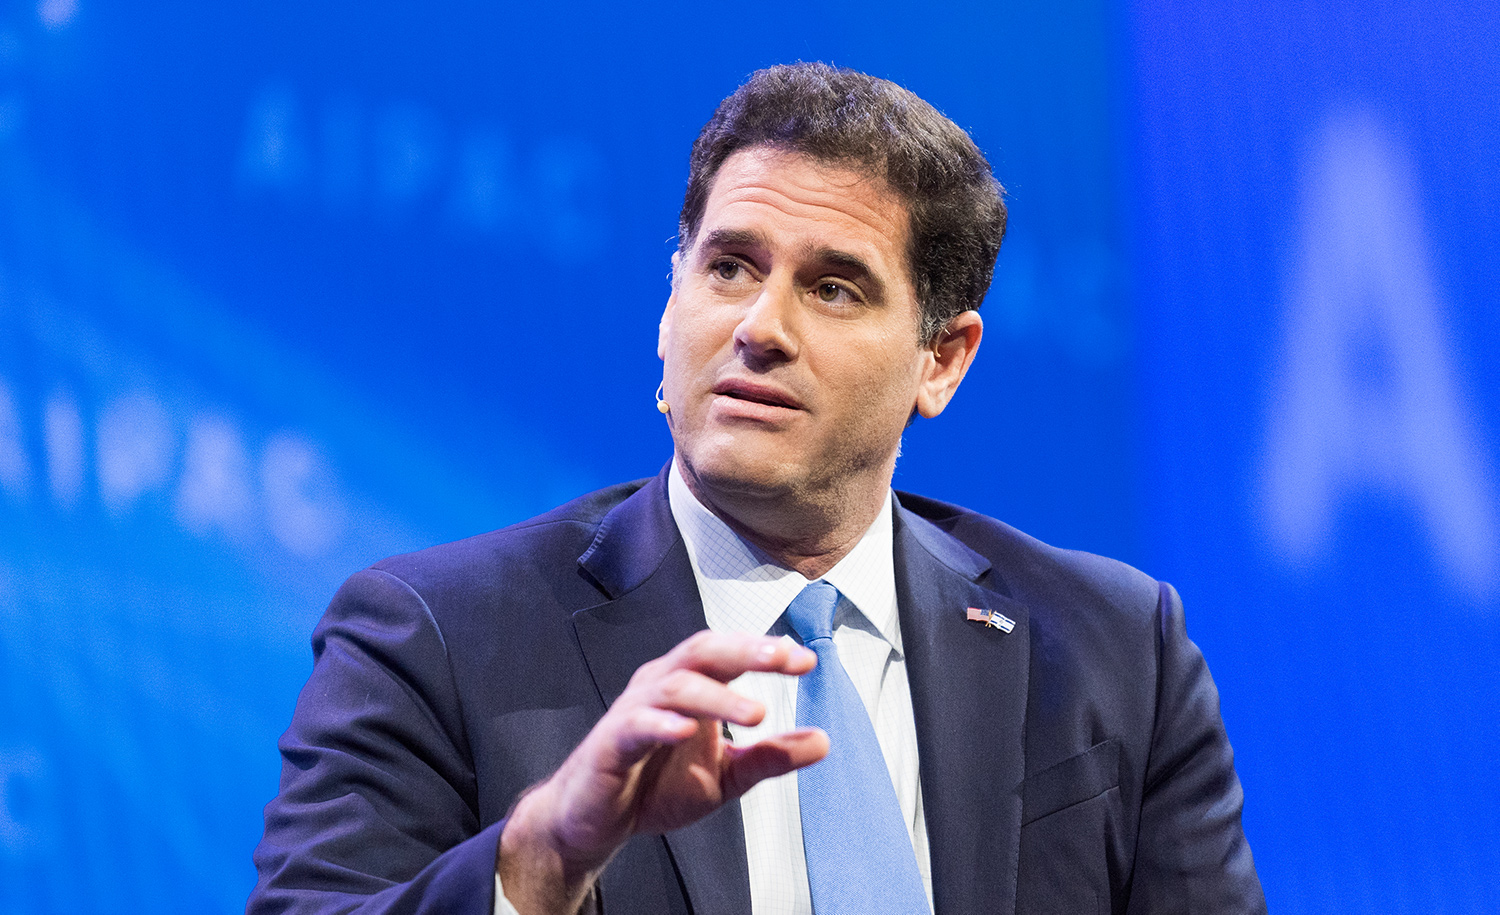 Ron Dermer at the AIPAC Policy Conference in Washington in 2018. Michael Brochstein/SOPA Images/LightRocket via Getty Images.